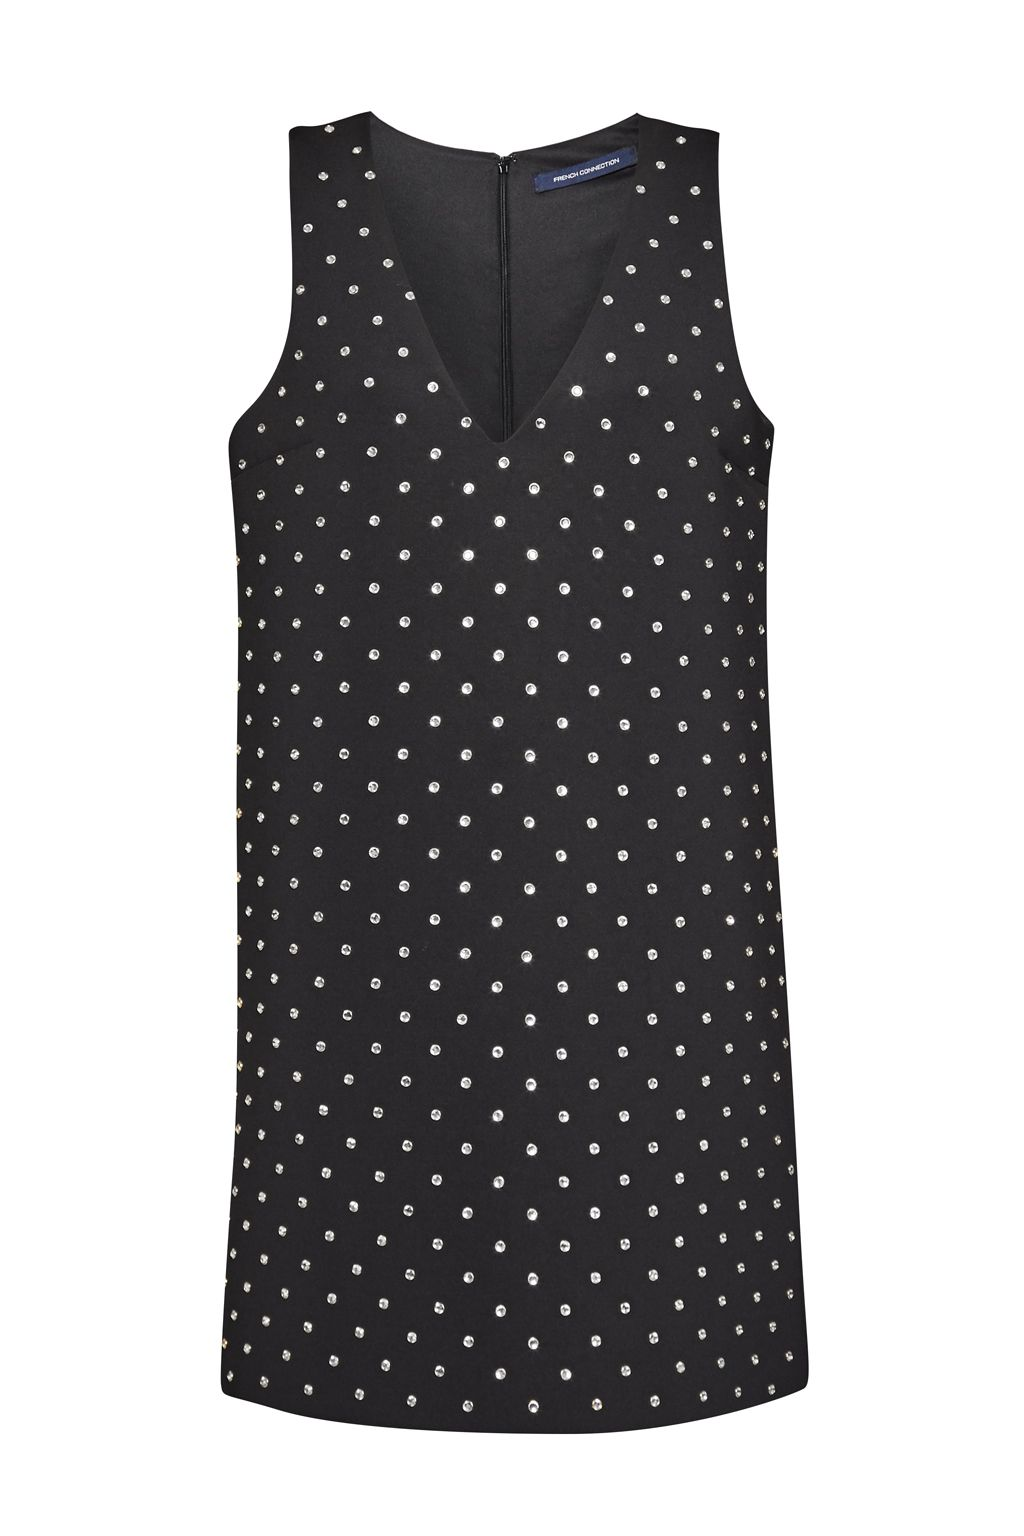 French Connection Diamond Drop Jersey Dress, Black